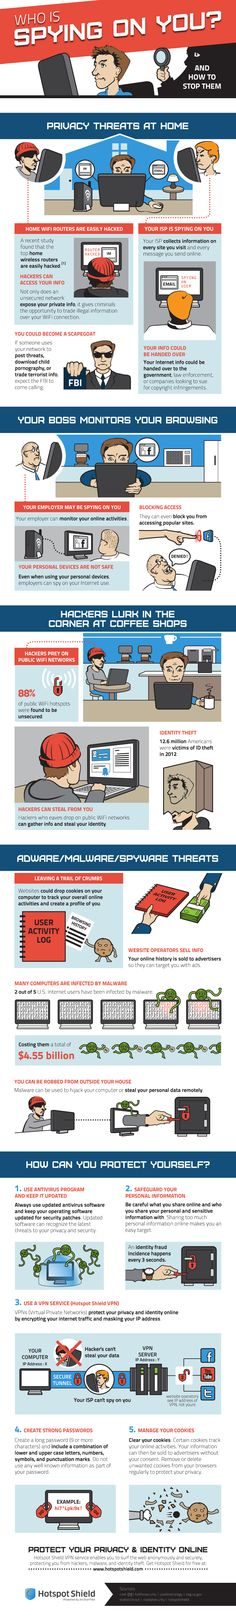 http://venturebeat.com/2013/07/09/whos-spying-on-you-and-how-to-make-them-stop-infographic/